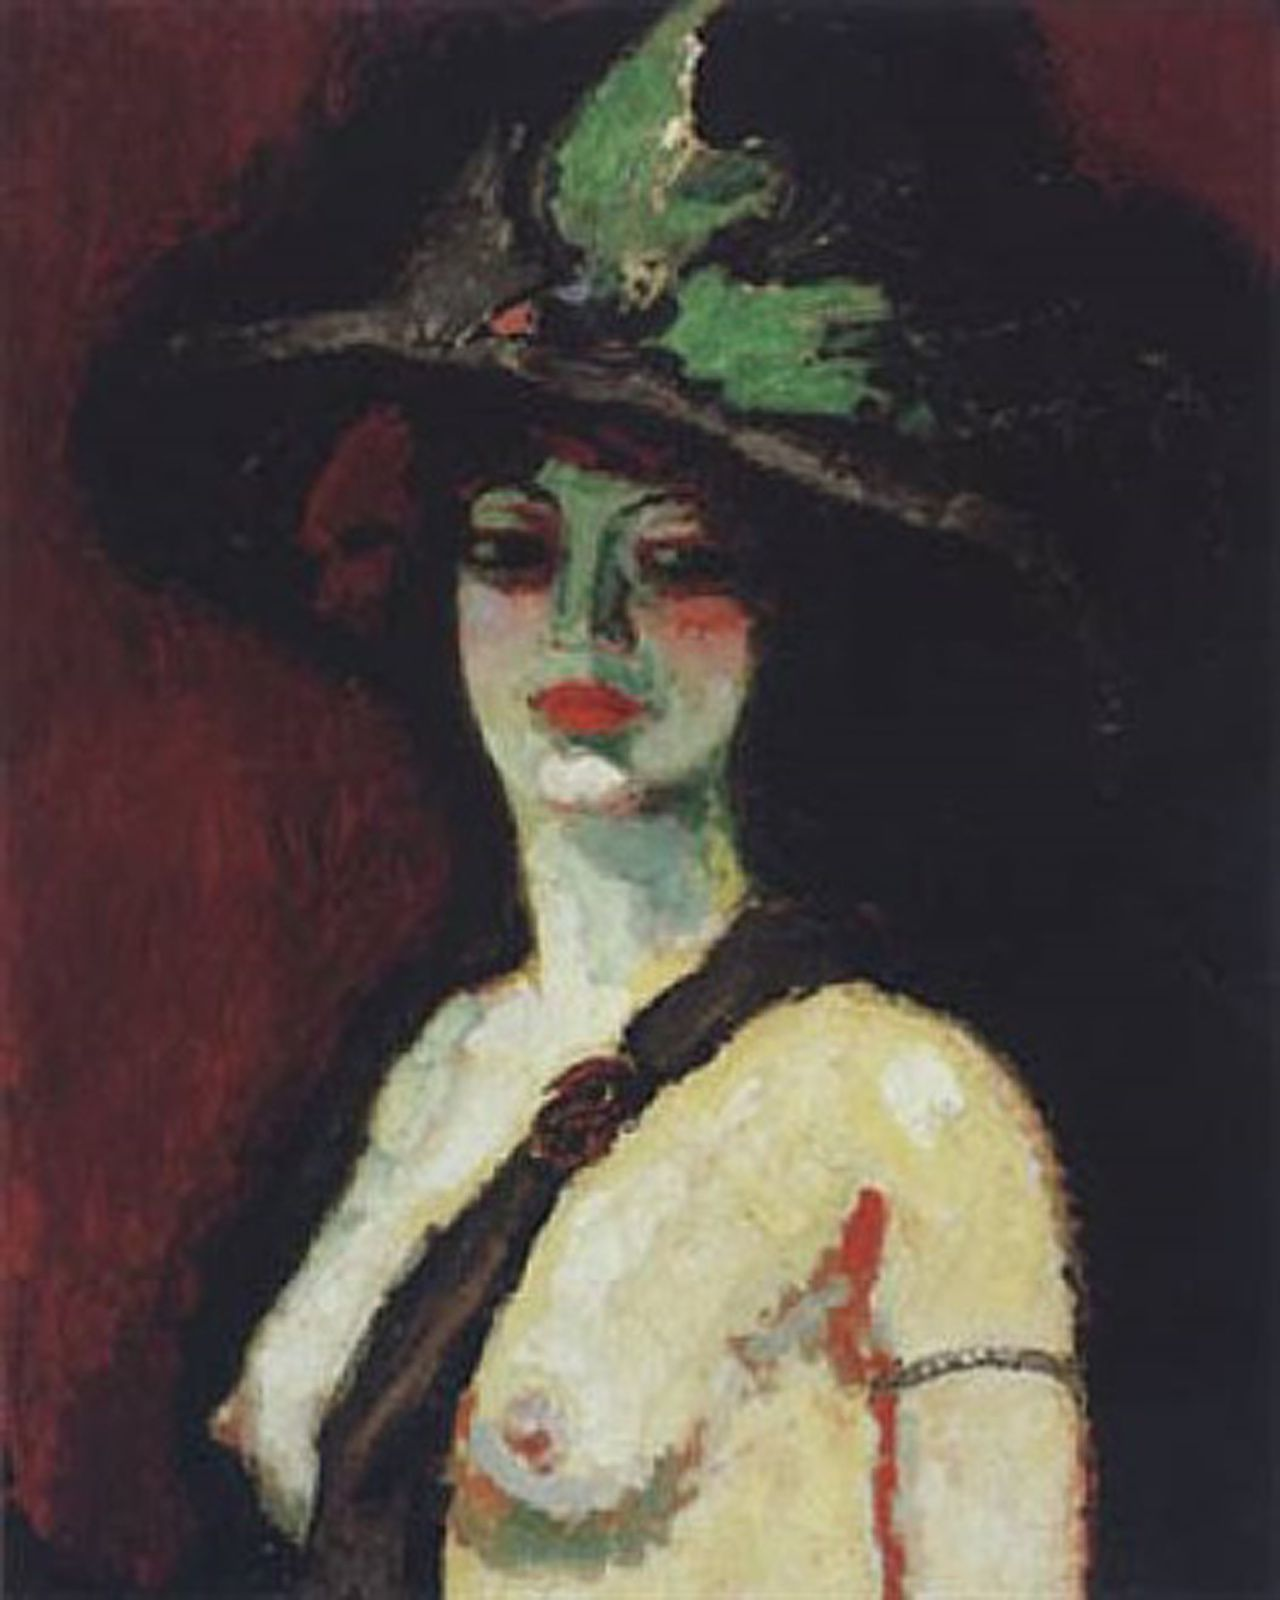 """Femme au chapeau"", 1906 de Kees Van Dongen - Courtesy Collection Alicia KOPLOWITZ - Grupo Omega Capital"